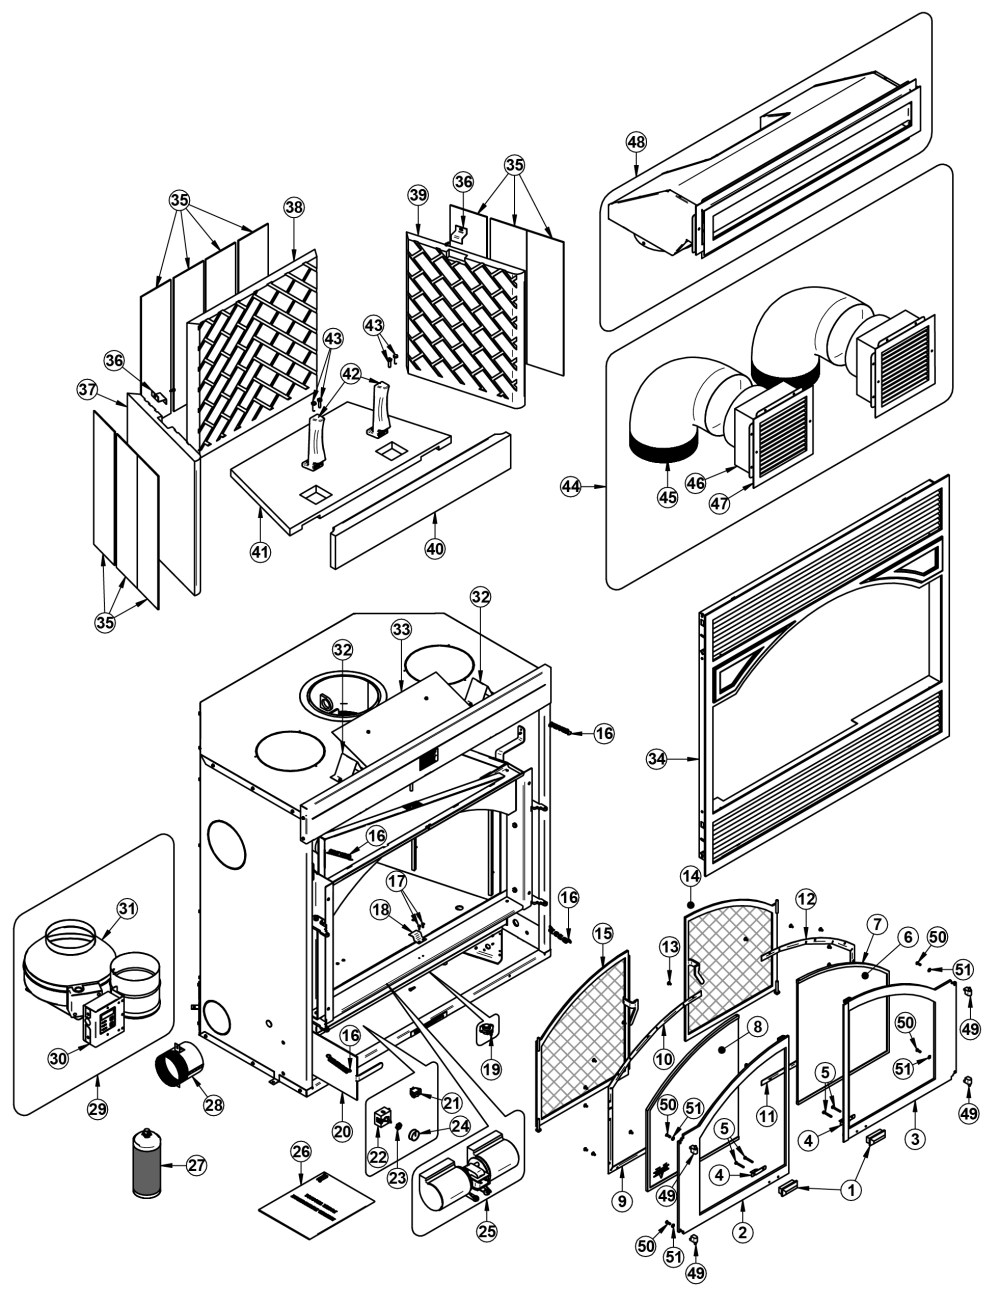 medium resolution of exploded view drawing and parts list me300 ventis wood fireplace